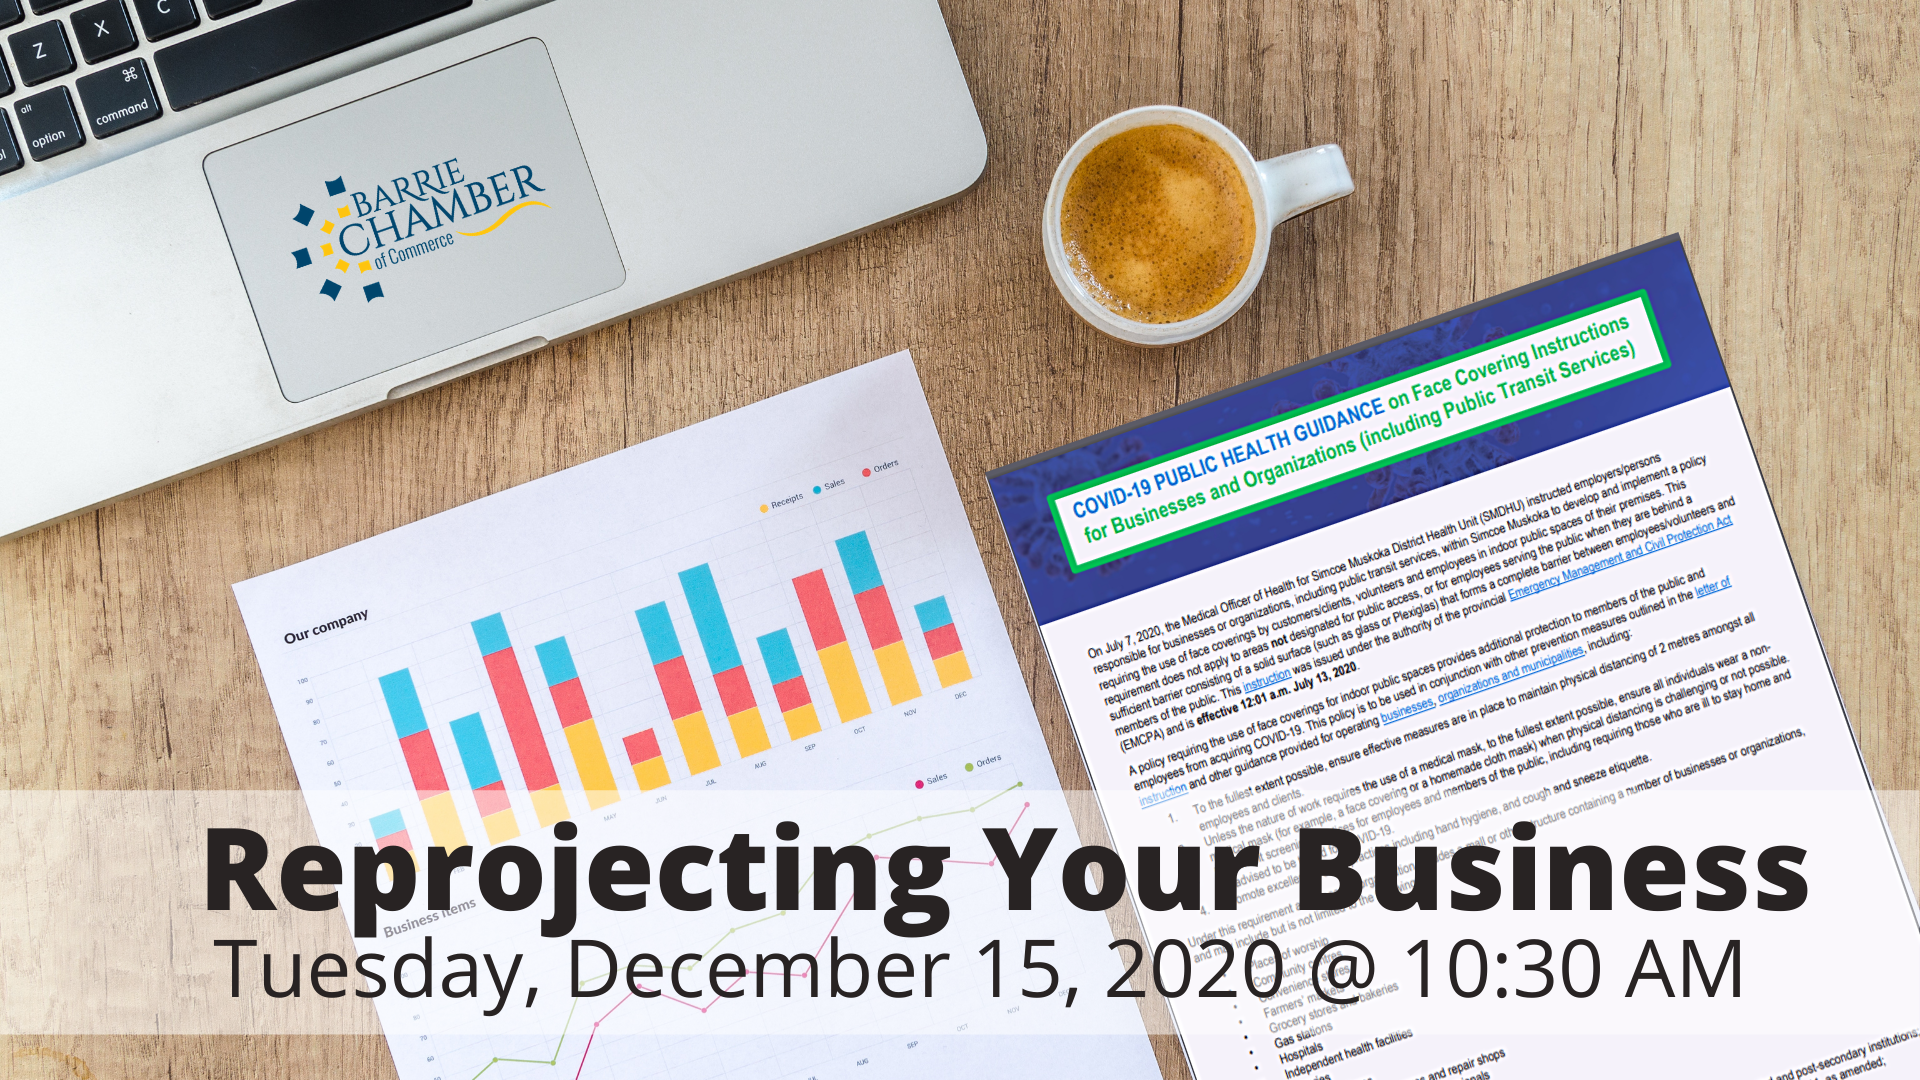 Reprojecting Your Business - December 15, 2020 @ 10:30 am